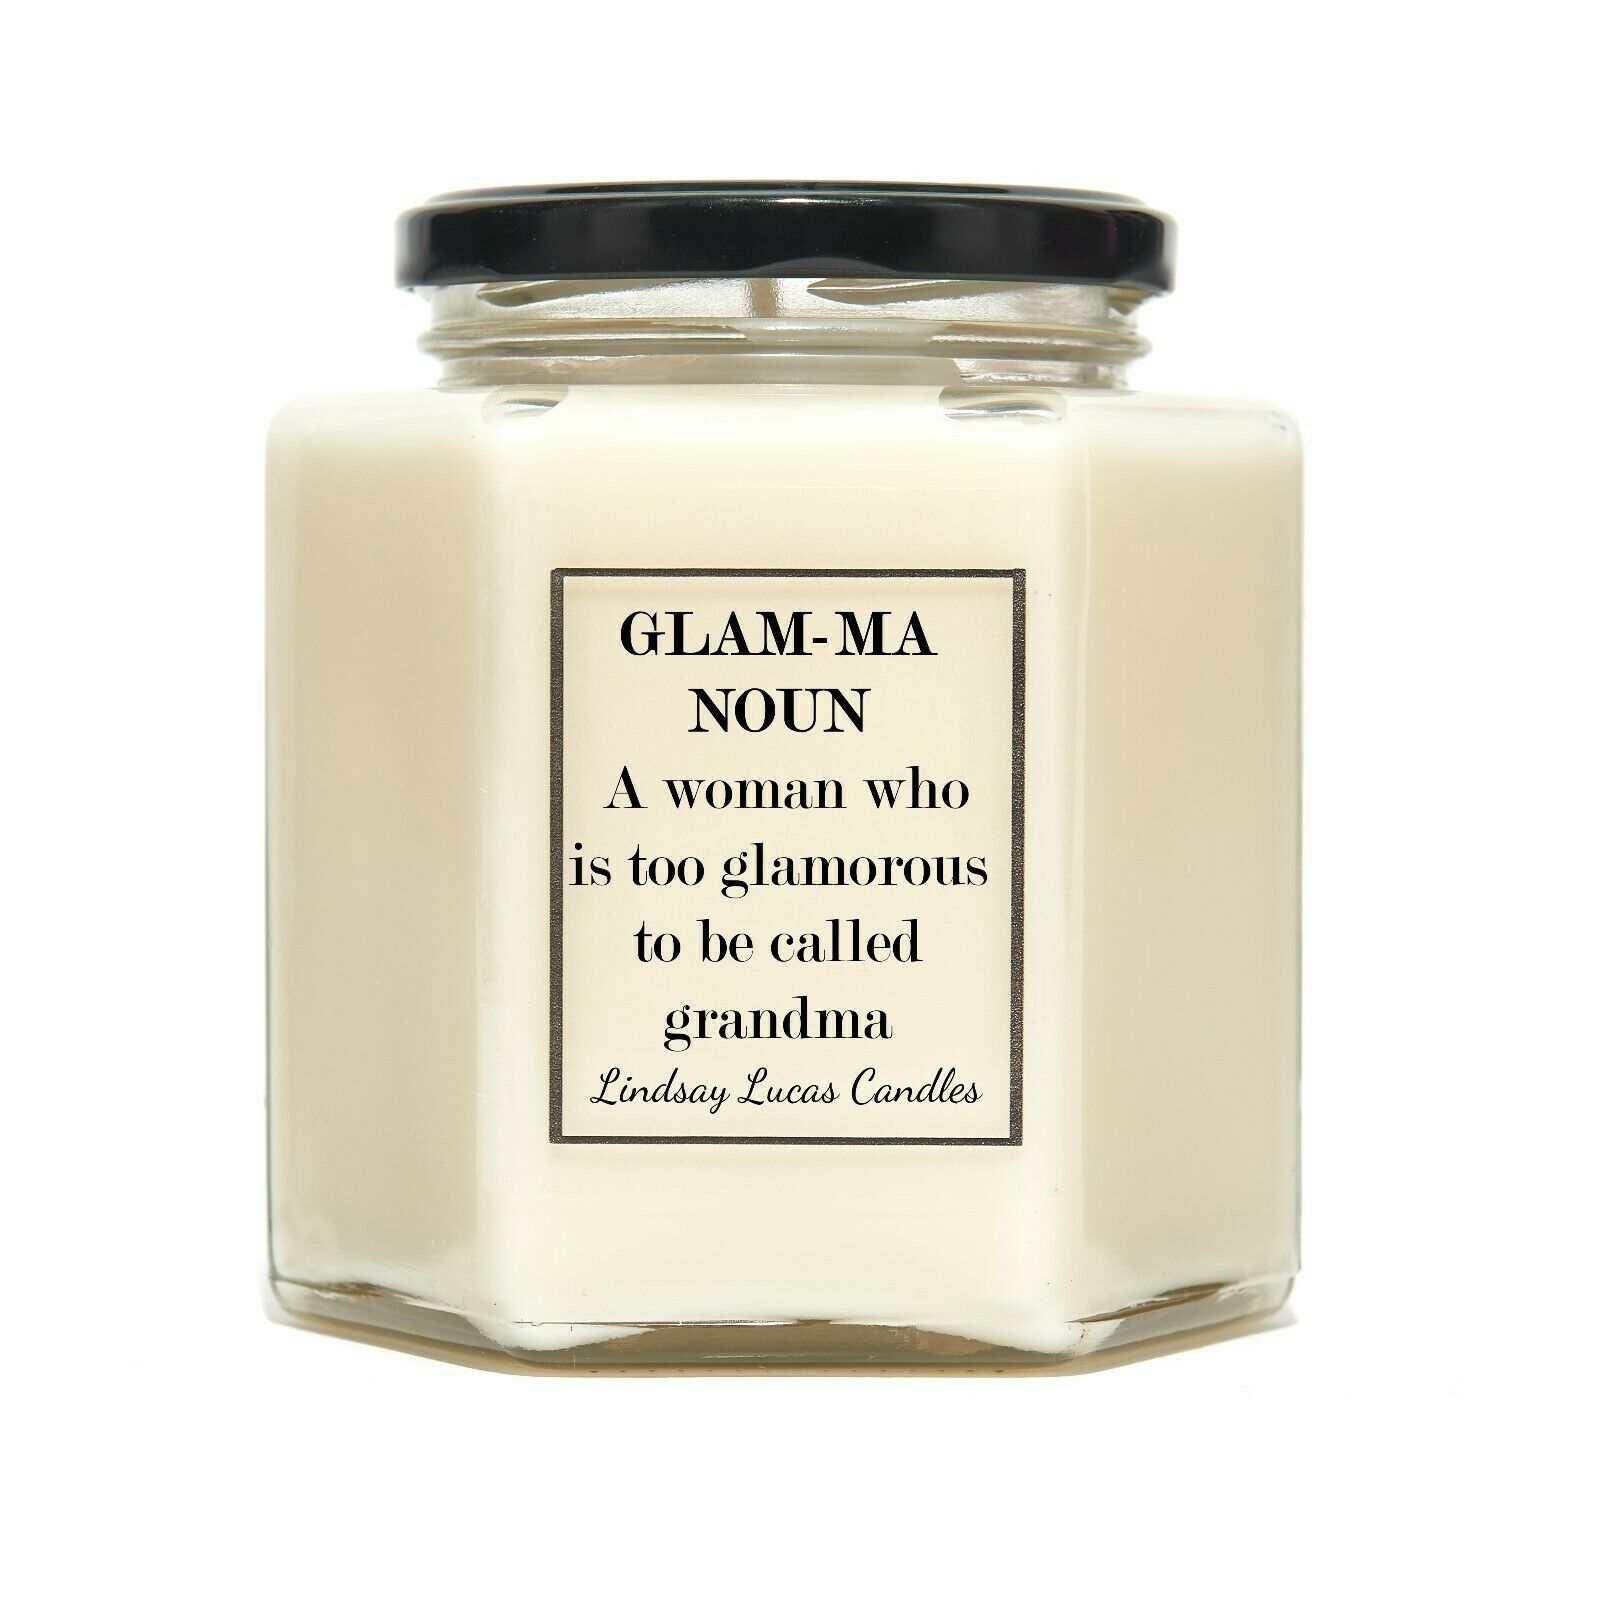 Gift For Gran/Nana, Candle, Scented Candle, Glam-ma, Candles